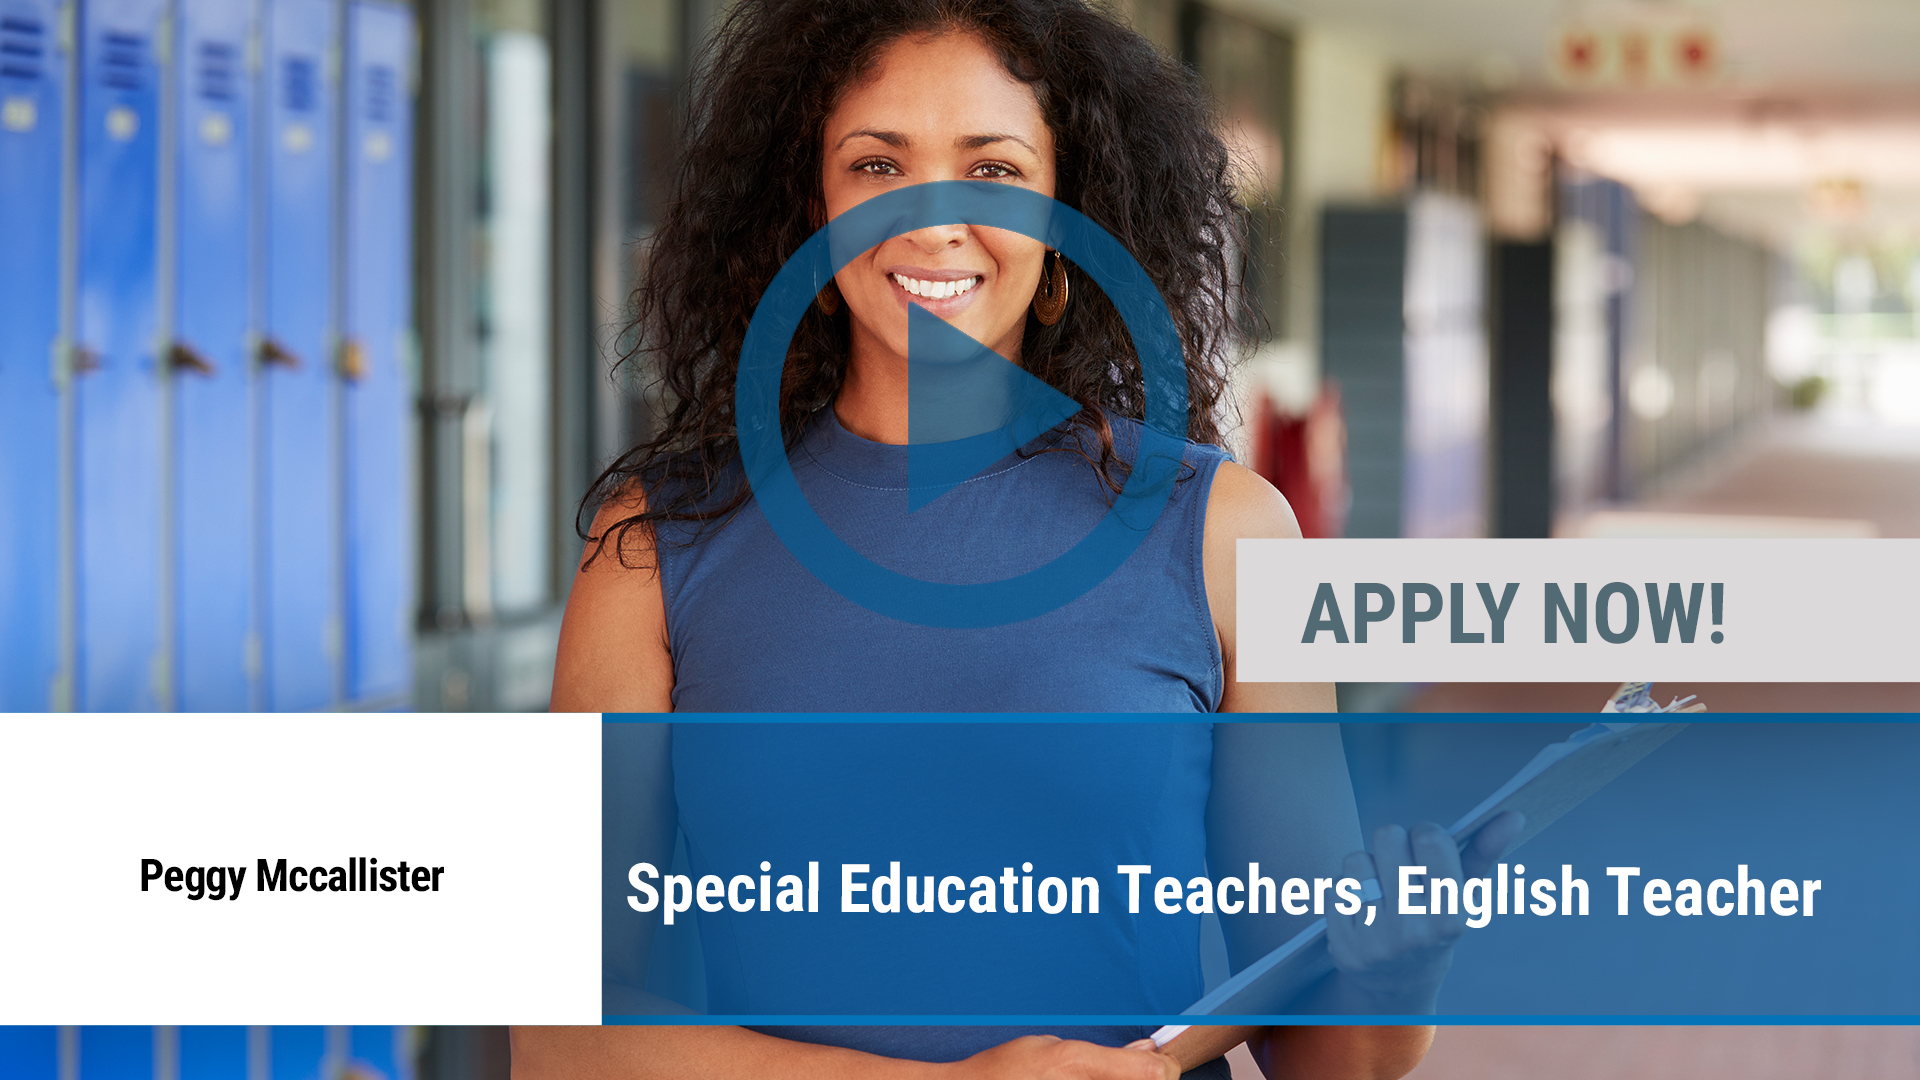 Watch our careers video for available job opening Special Education Teachers, English Teacher in Keeseville, NY